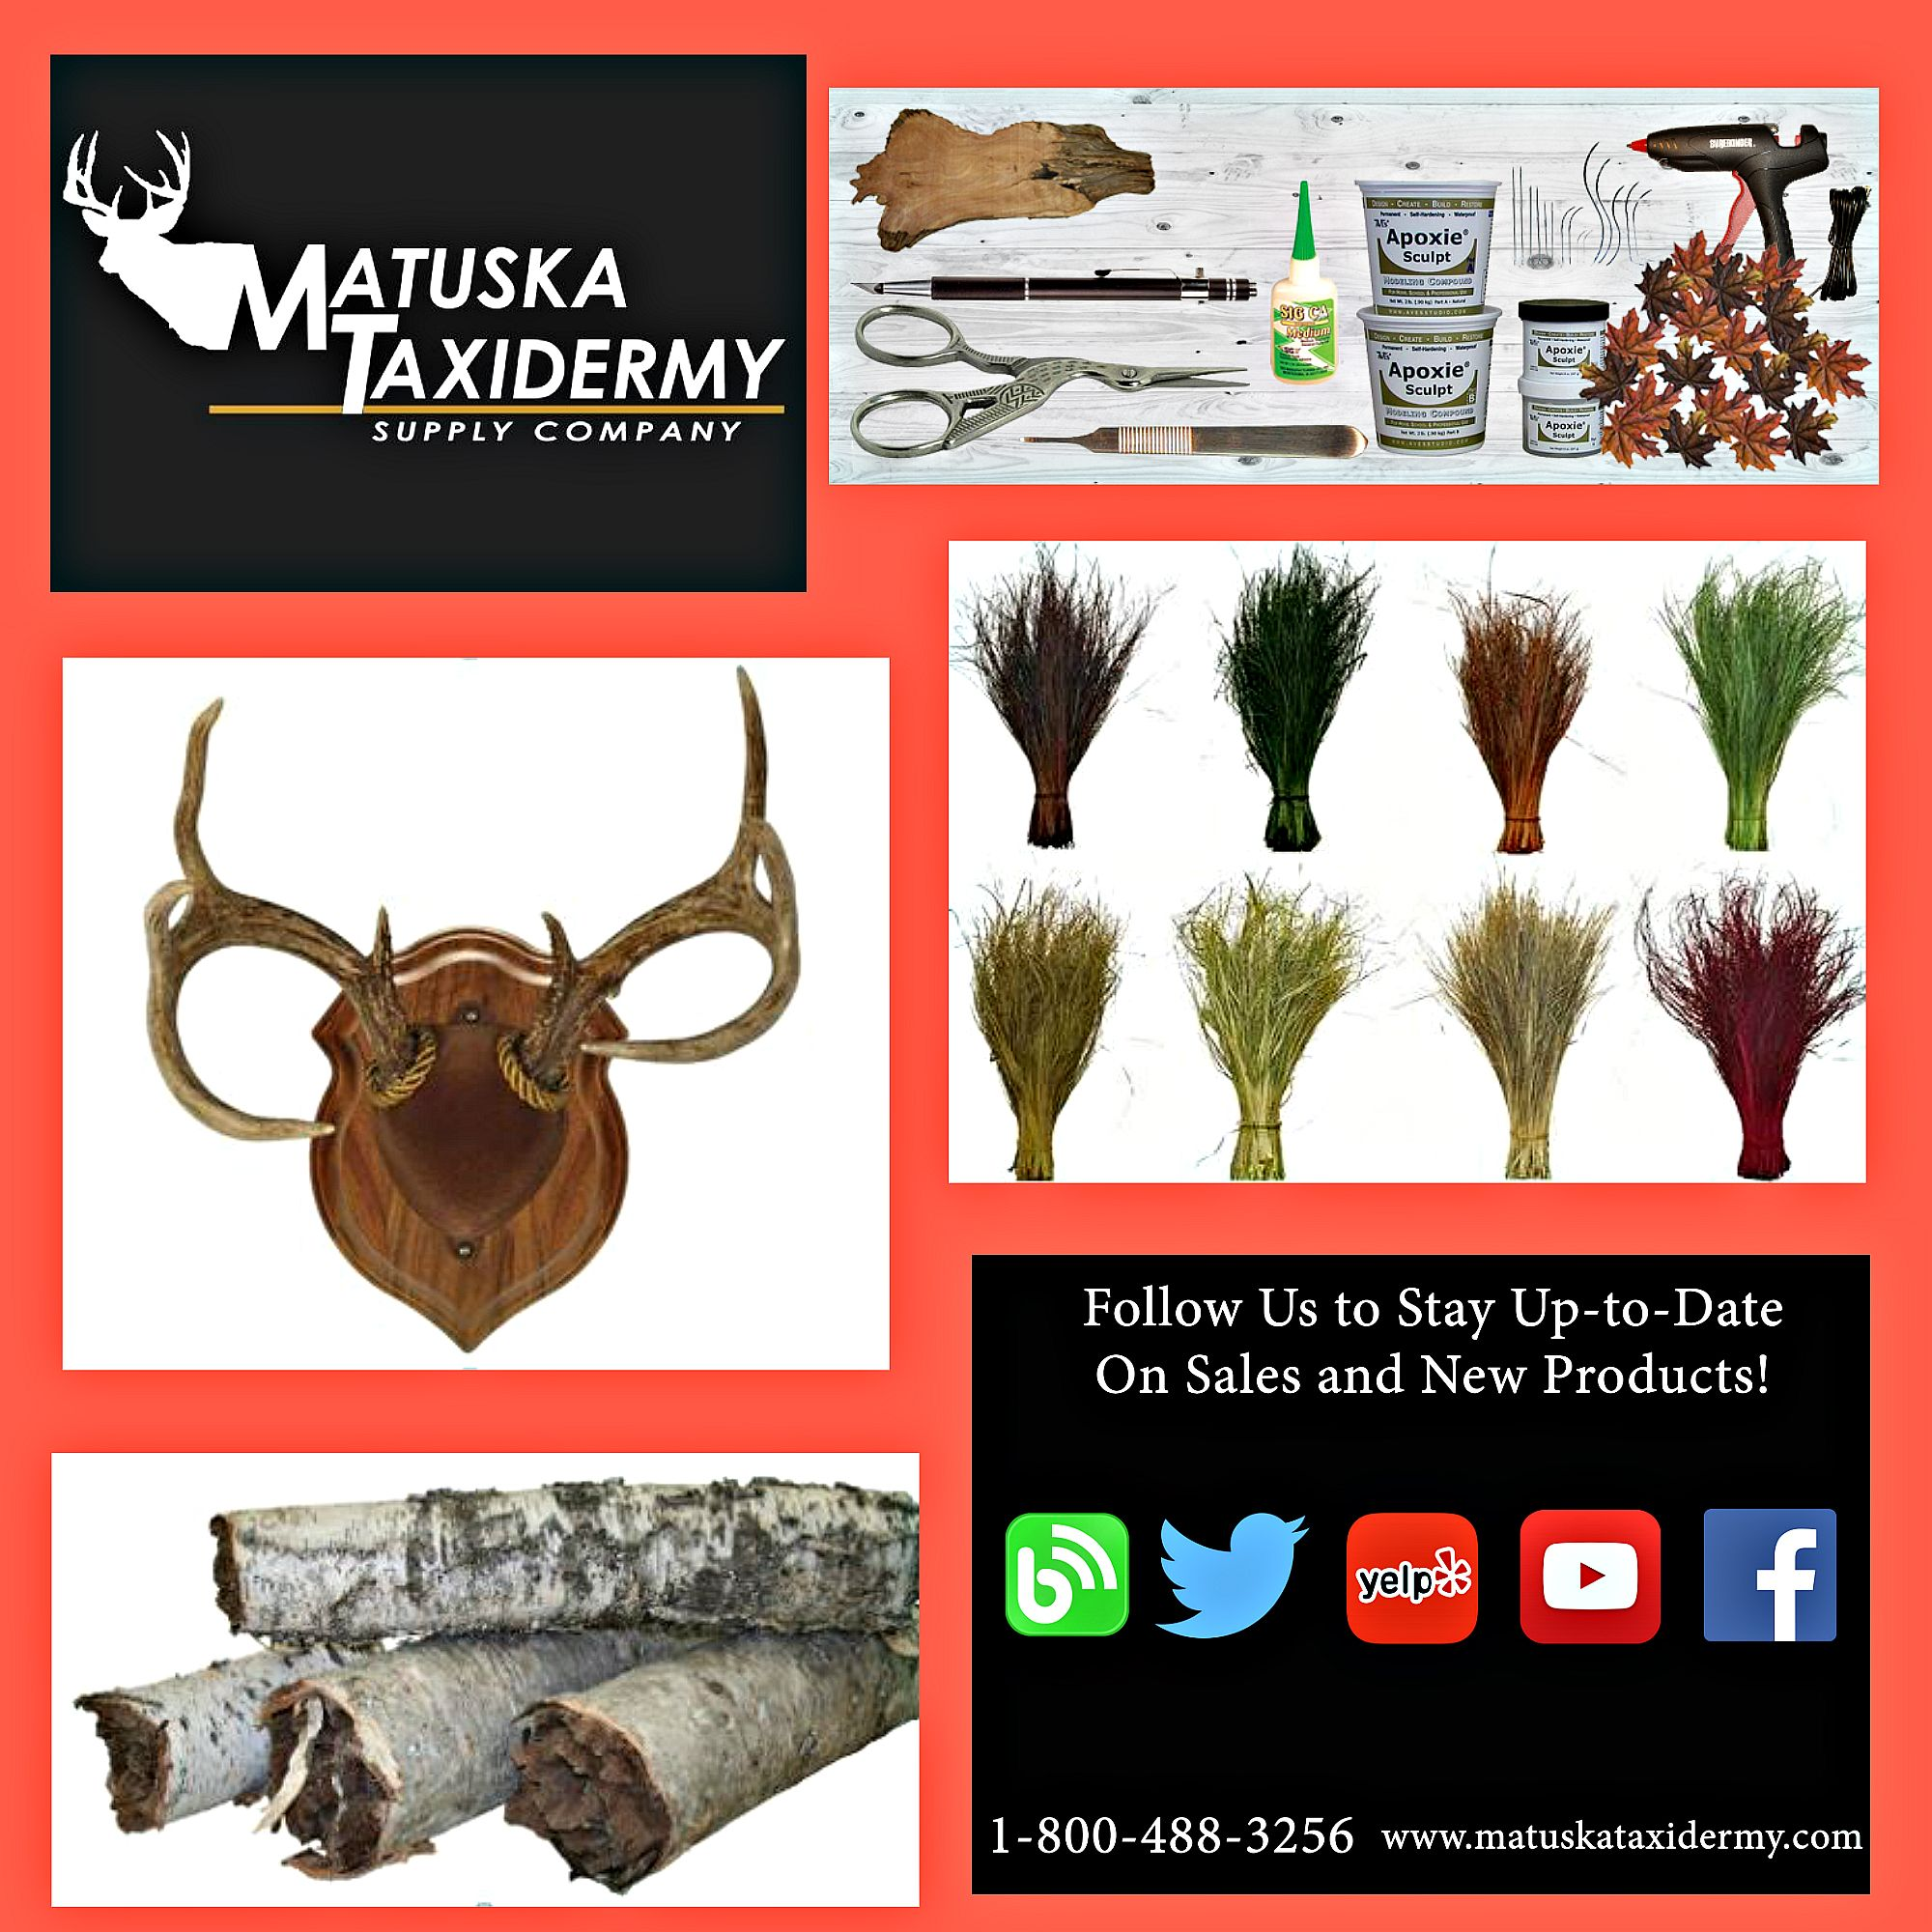 Matuska Taxidermy Supply Co has a variety of supplies for your taxidermy and crafting needs #MatuskaTaxidermySupplyCo #taxidermysupplies